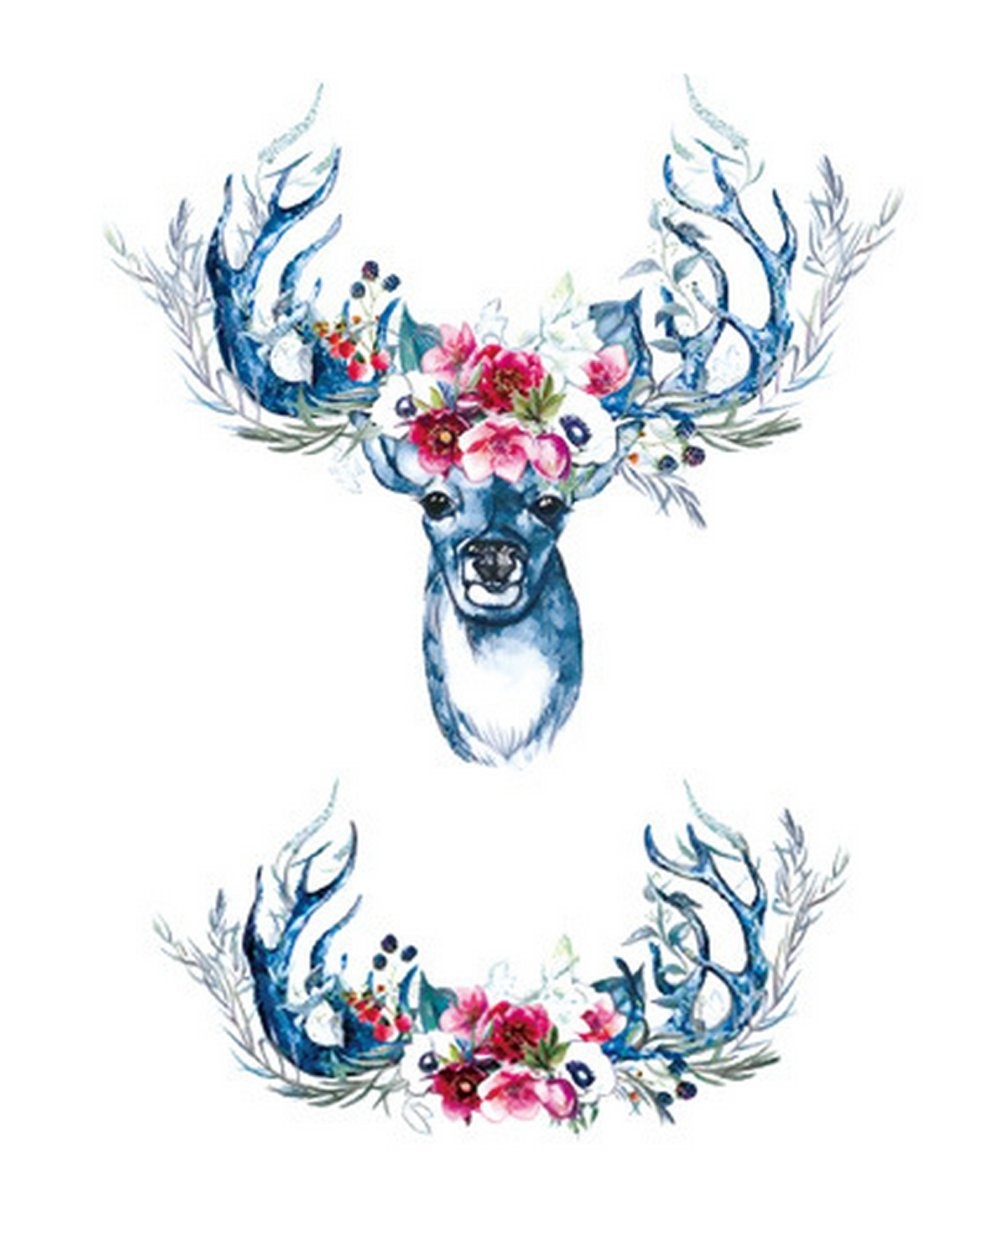 5 Sheets Premium Temporary Tattoo - Unisex Waterproof Small Deer Flower Tattoo Sticker Removable Safe Realistic Fake Art Decal Wrist Arm Body Temporary Tattoo Sticker For Adults Kids Teens